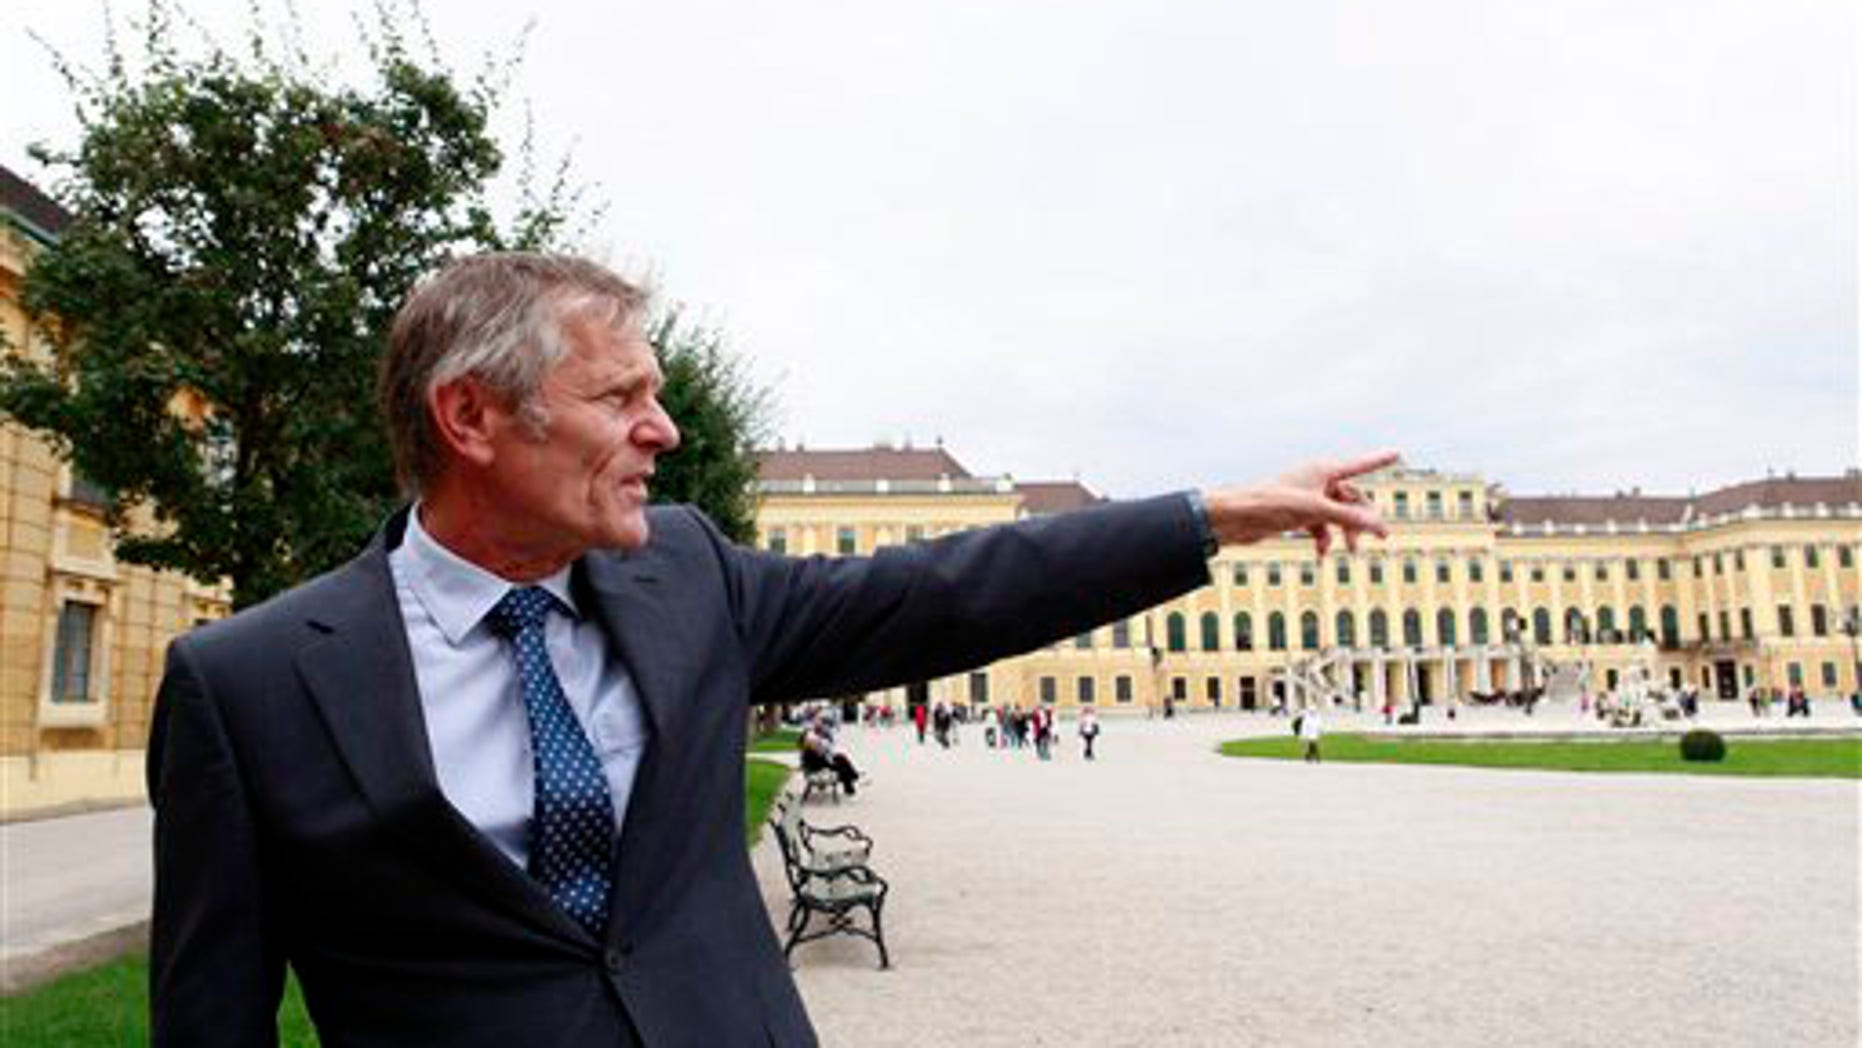 In this photo on Thursday, Sept. 9, 2010 Franz Sattlecker, who oversees apartment rentals at Schoenbrunn, the UNESCO world heritage site that members of the royal Habsburg dynasty once called home when they ruled the Austro-Hungarian Empire, speaks during an interview with the Associated Press in front of Schoenbrunn palace in Vienna, Austria. In Austria, unlike in most other European countries, several state-owned former imperial properties aren't just museums. They're now homes for ordinary citizens.